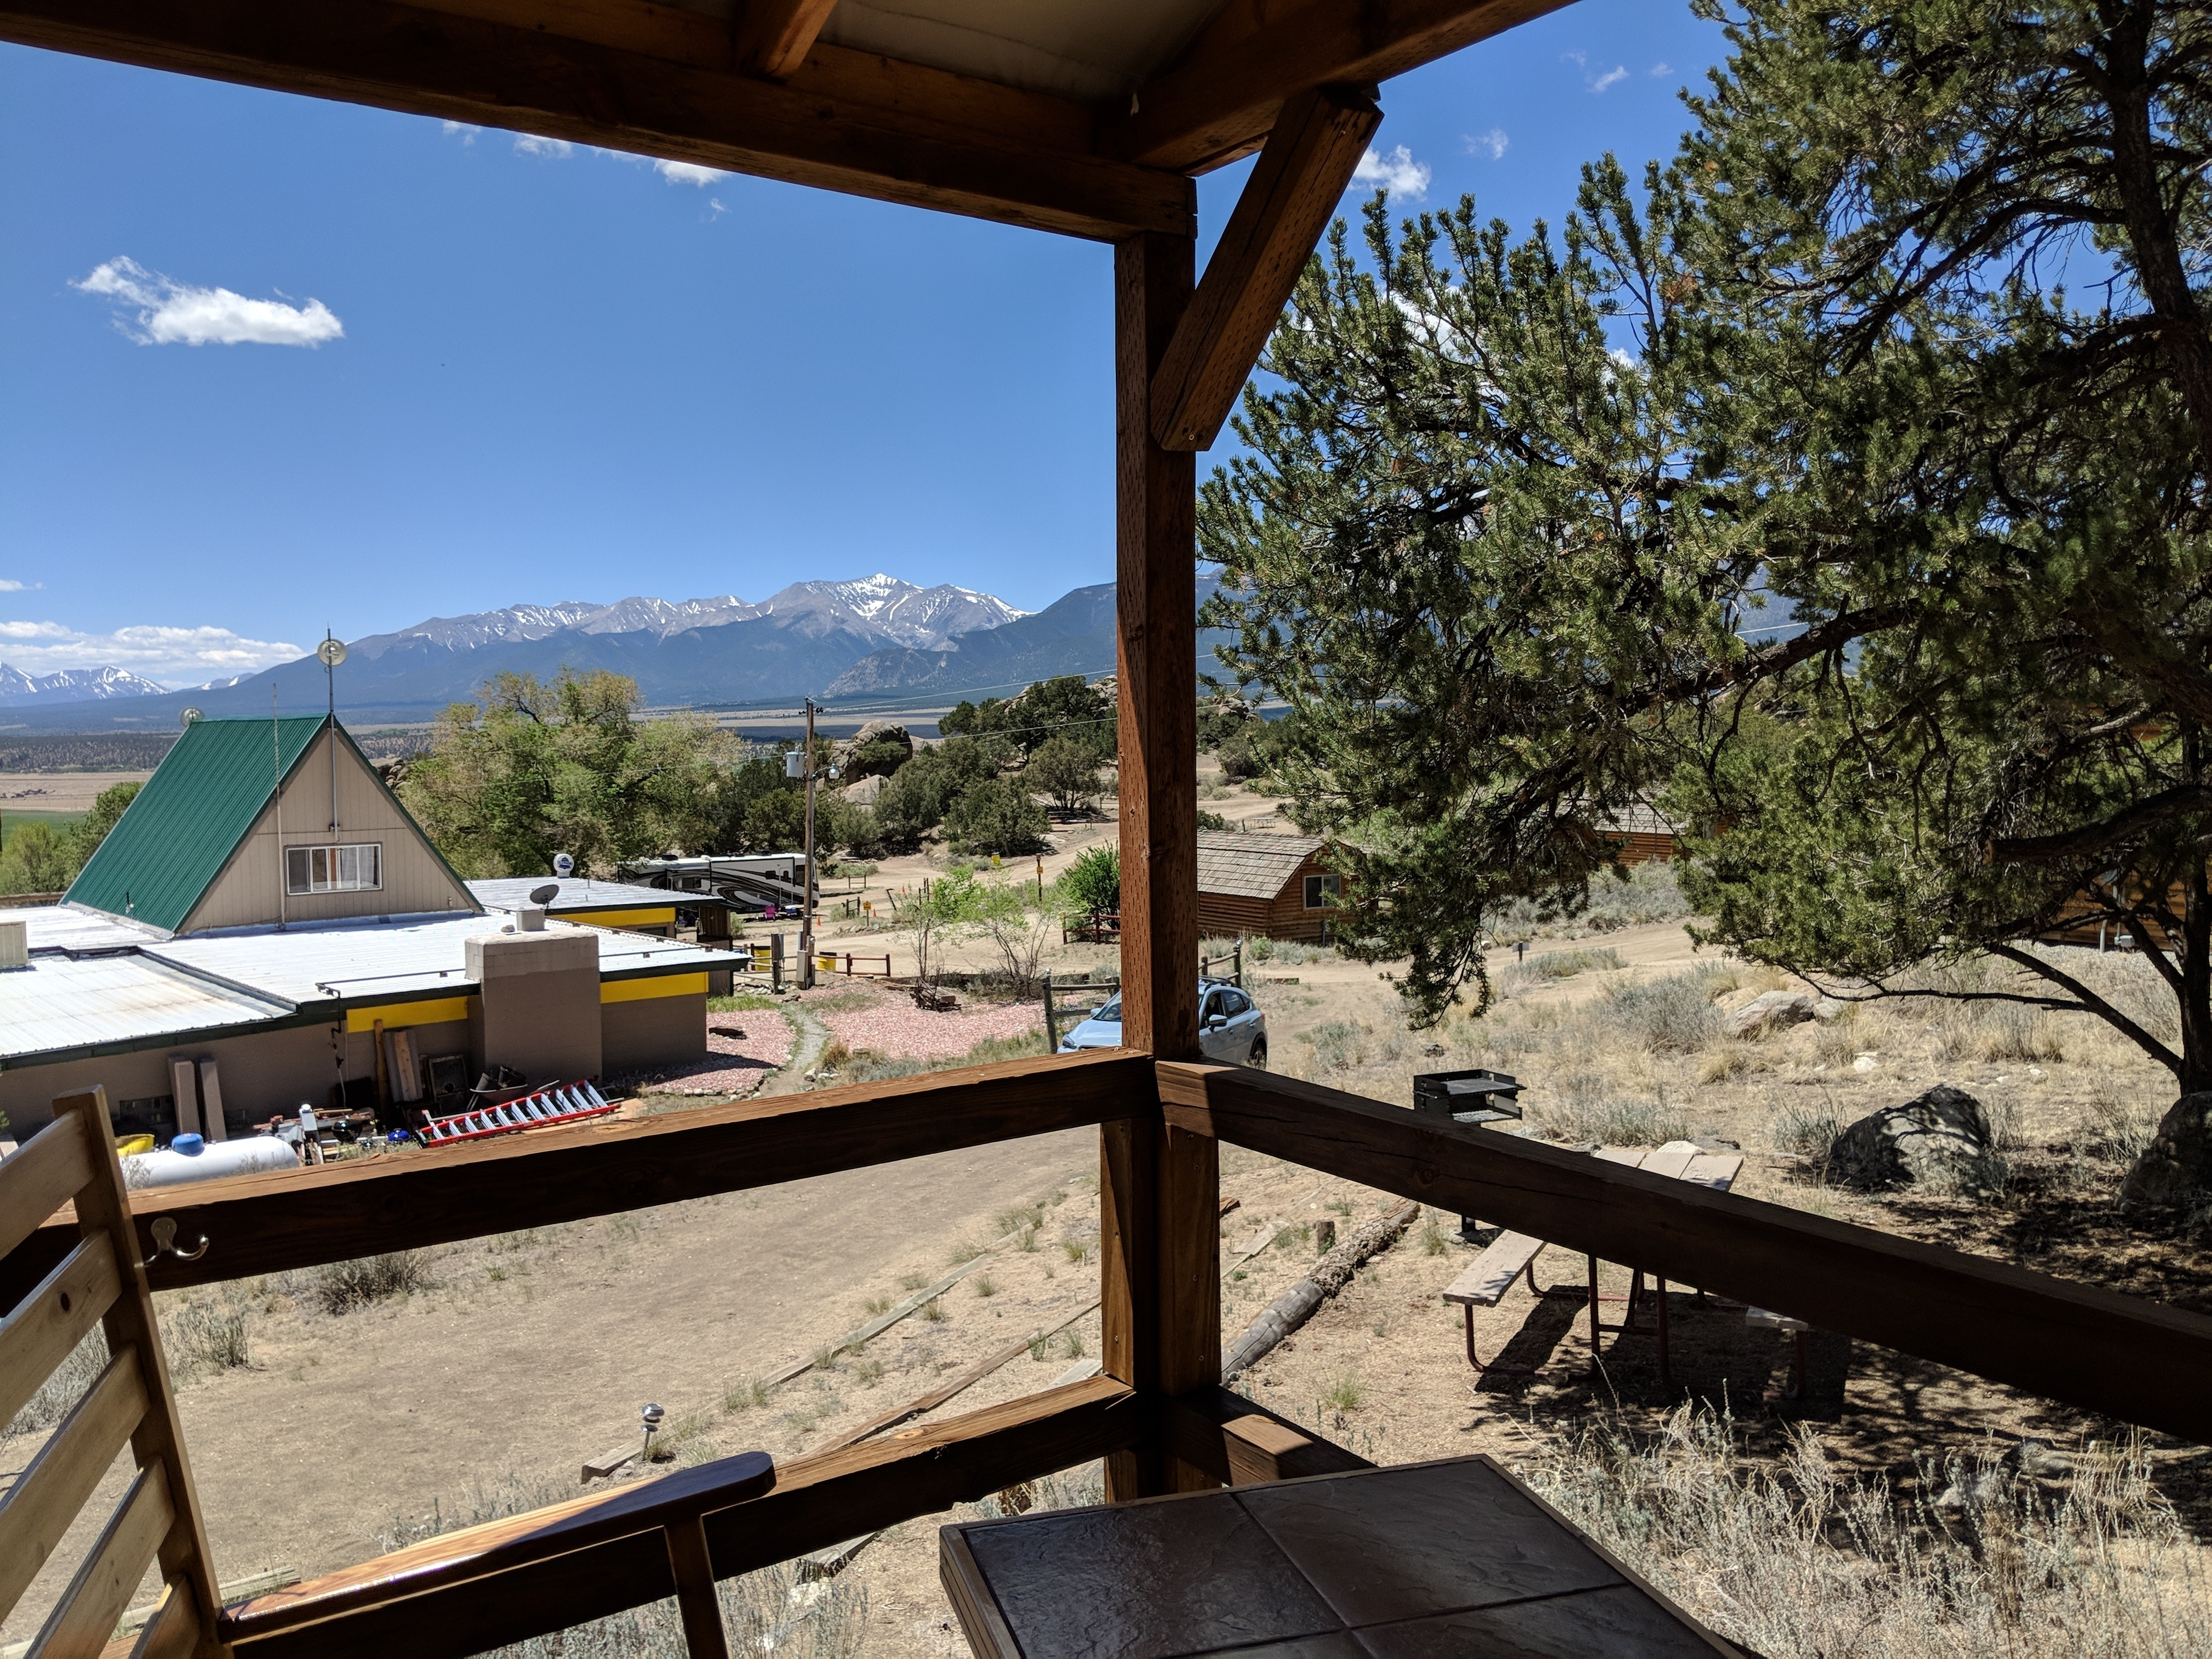 Tent Cabin View